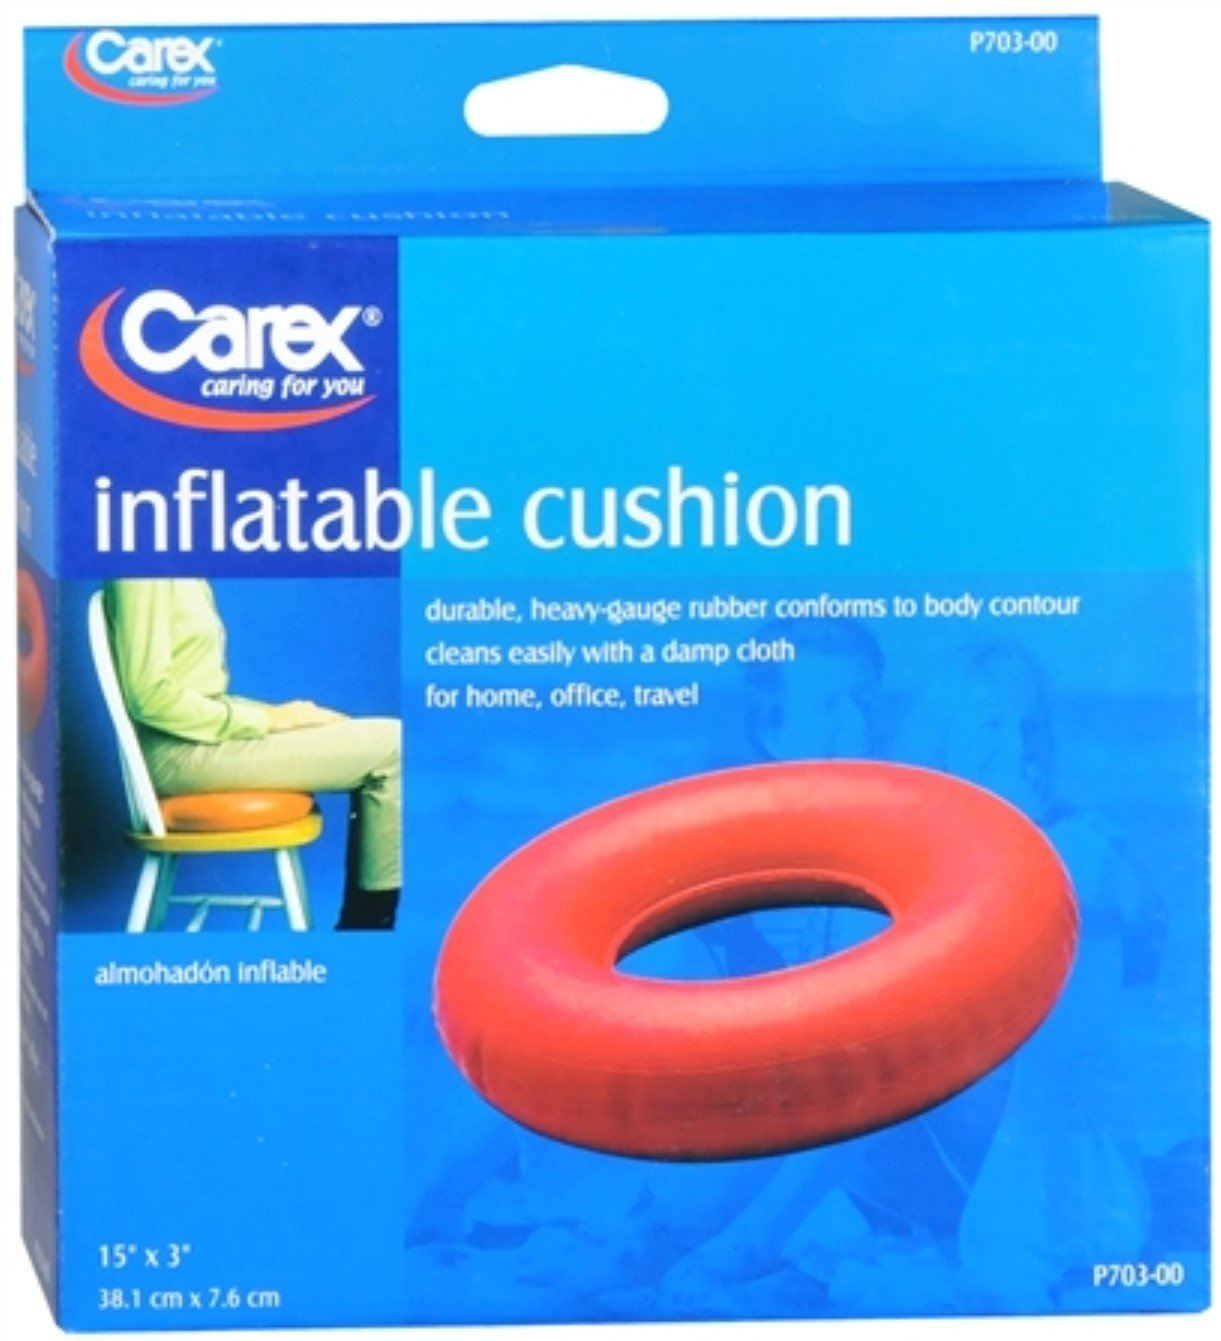 Carex Inflatable Cushion P703-00 1 Each (Pack of 9)